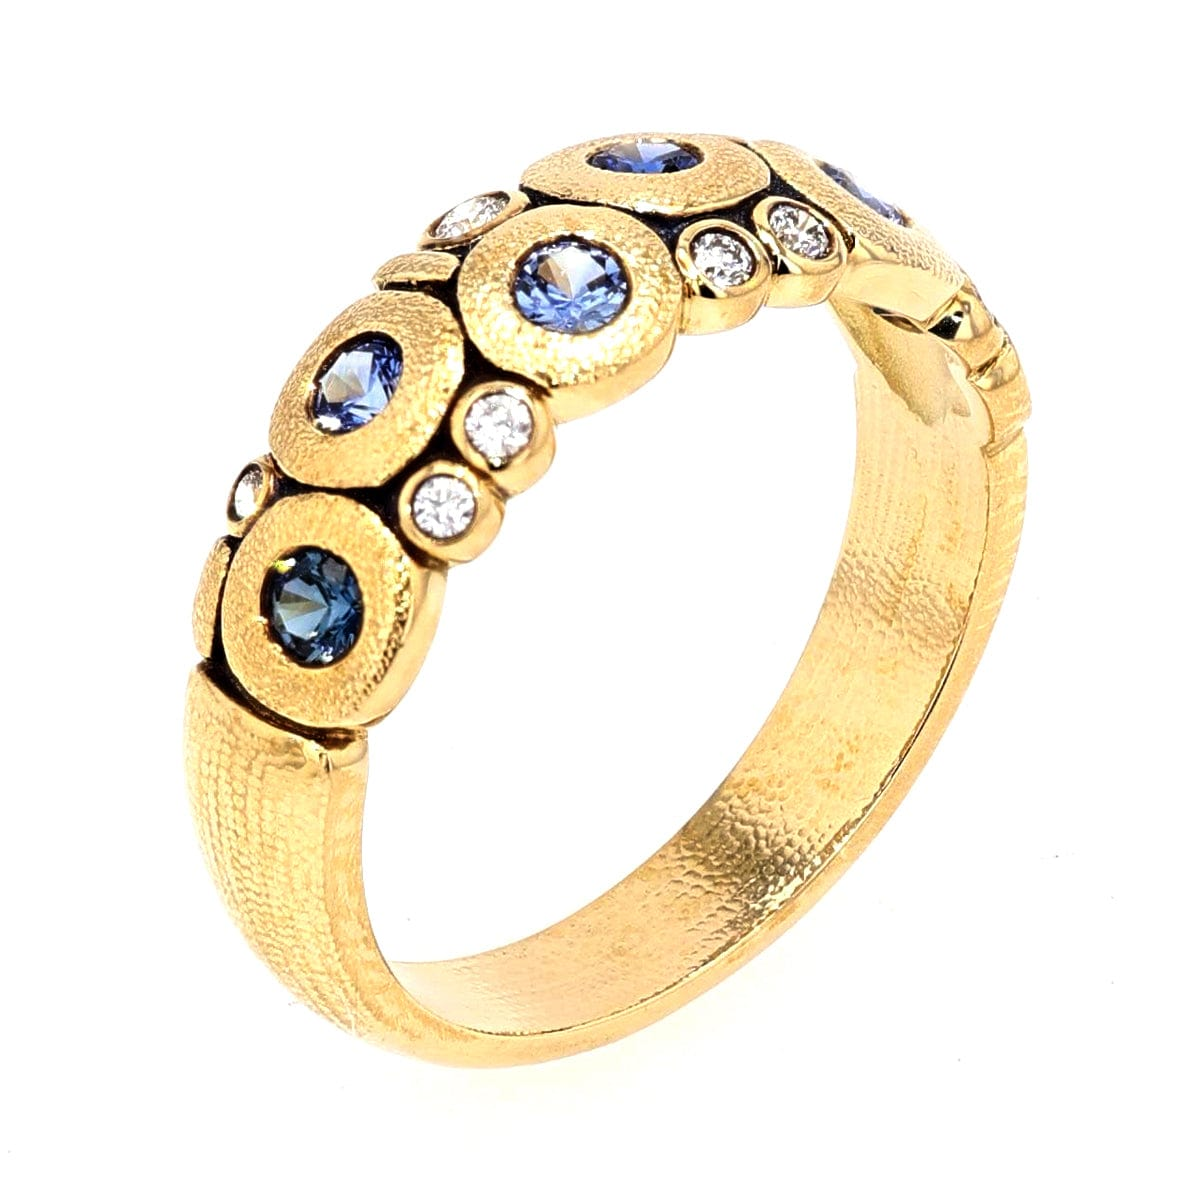 18K Candy Blue Mix Sapphire & Diamond Dome Ring - R-122S-Alex Sepkus-Renee Taylor Gallery